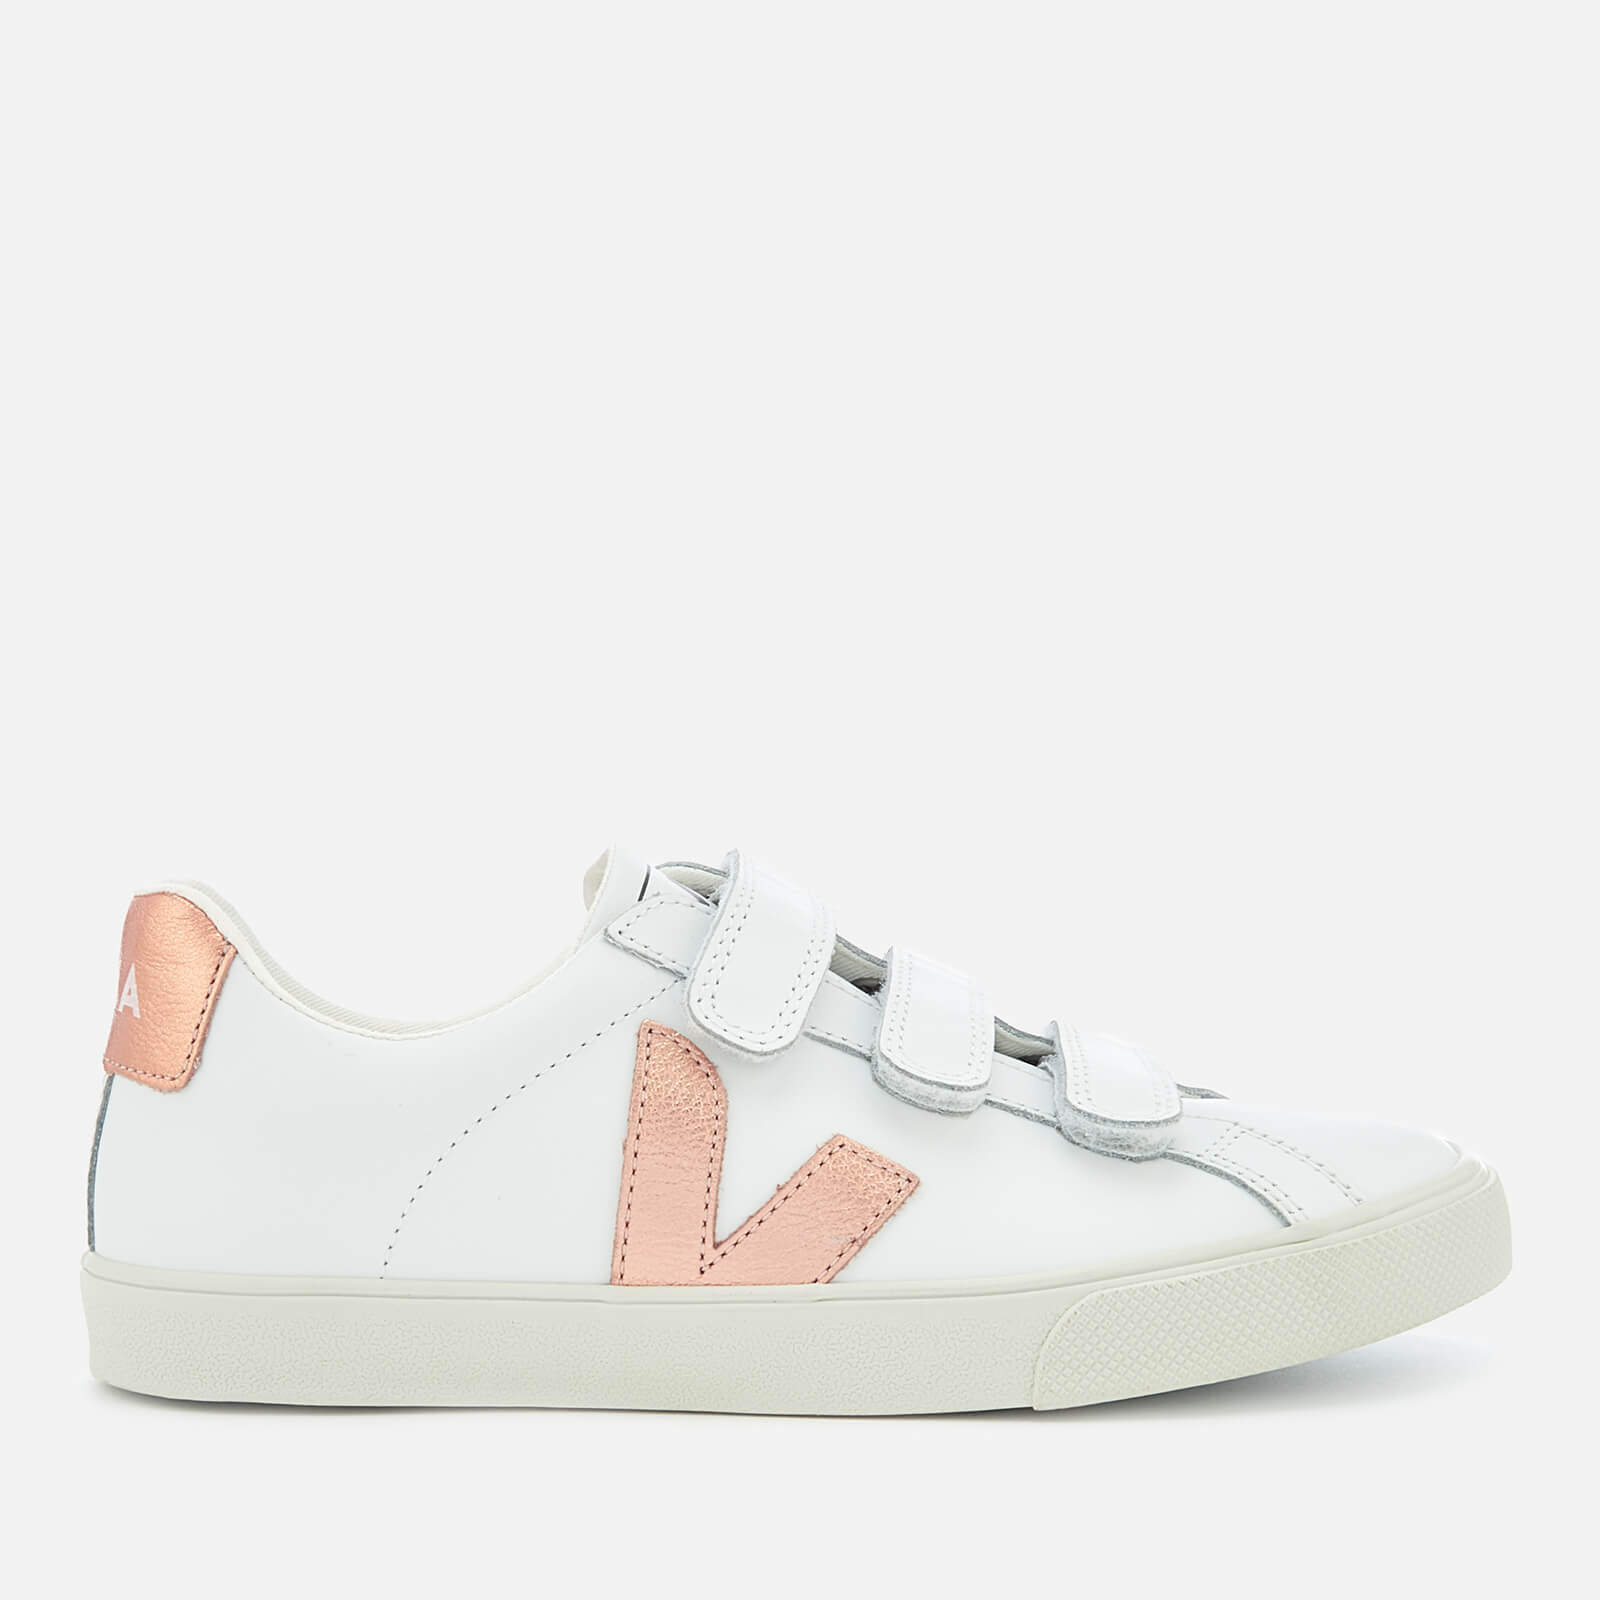 051e136d1a8d00 Veja Women's 3-Lock Leather Trainers - Extra White Venus - Free UK Delivery  over £50